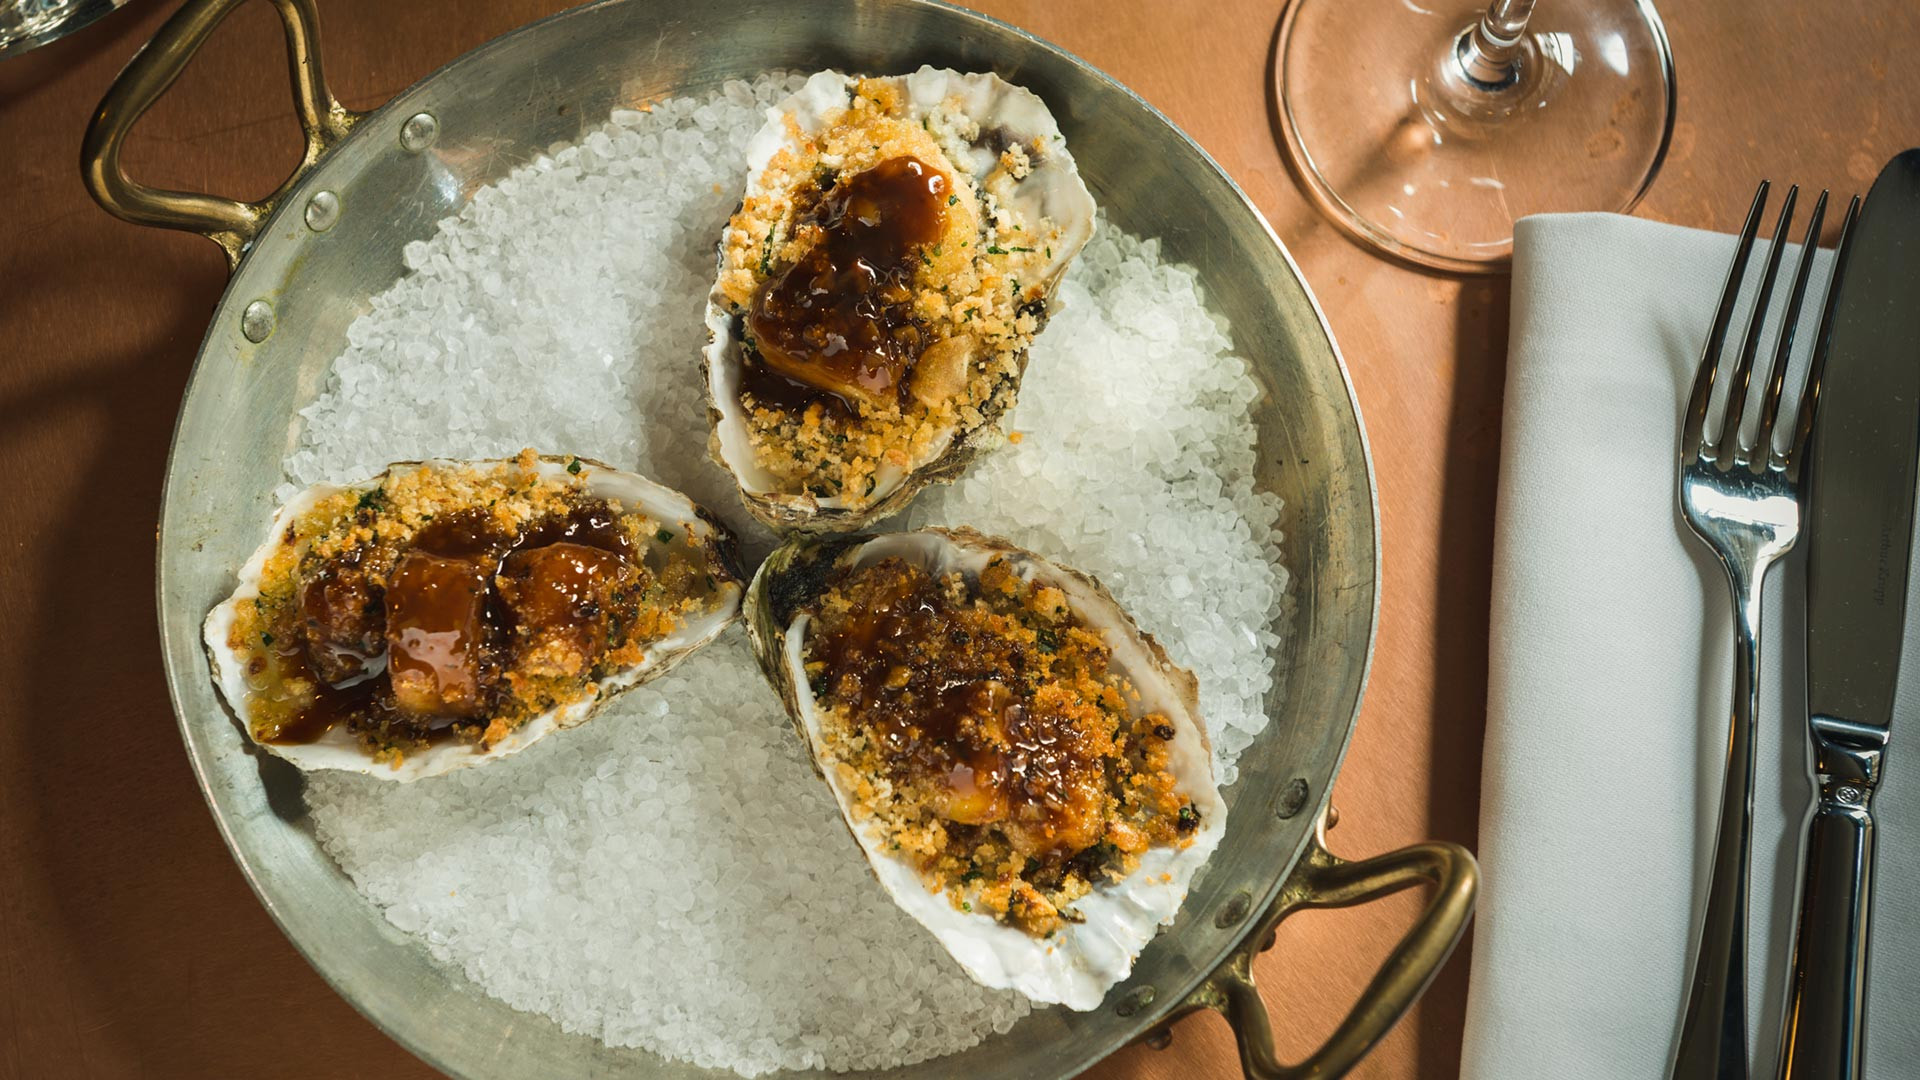 Roasted oysters with bone marrow at Hawksmoor